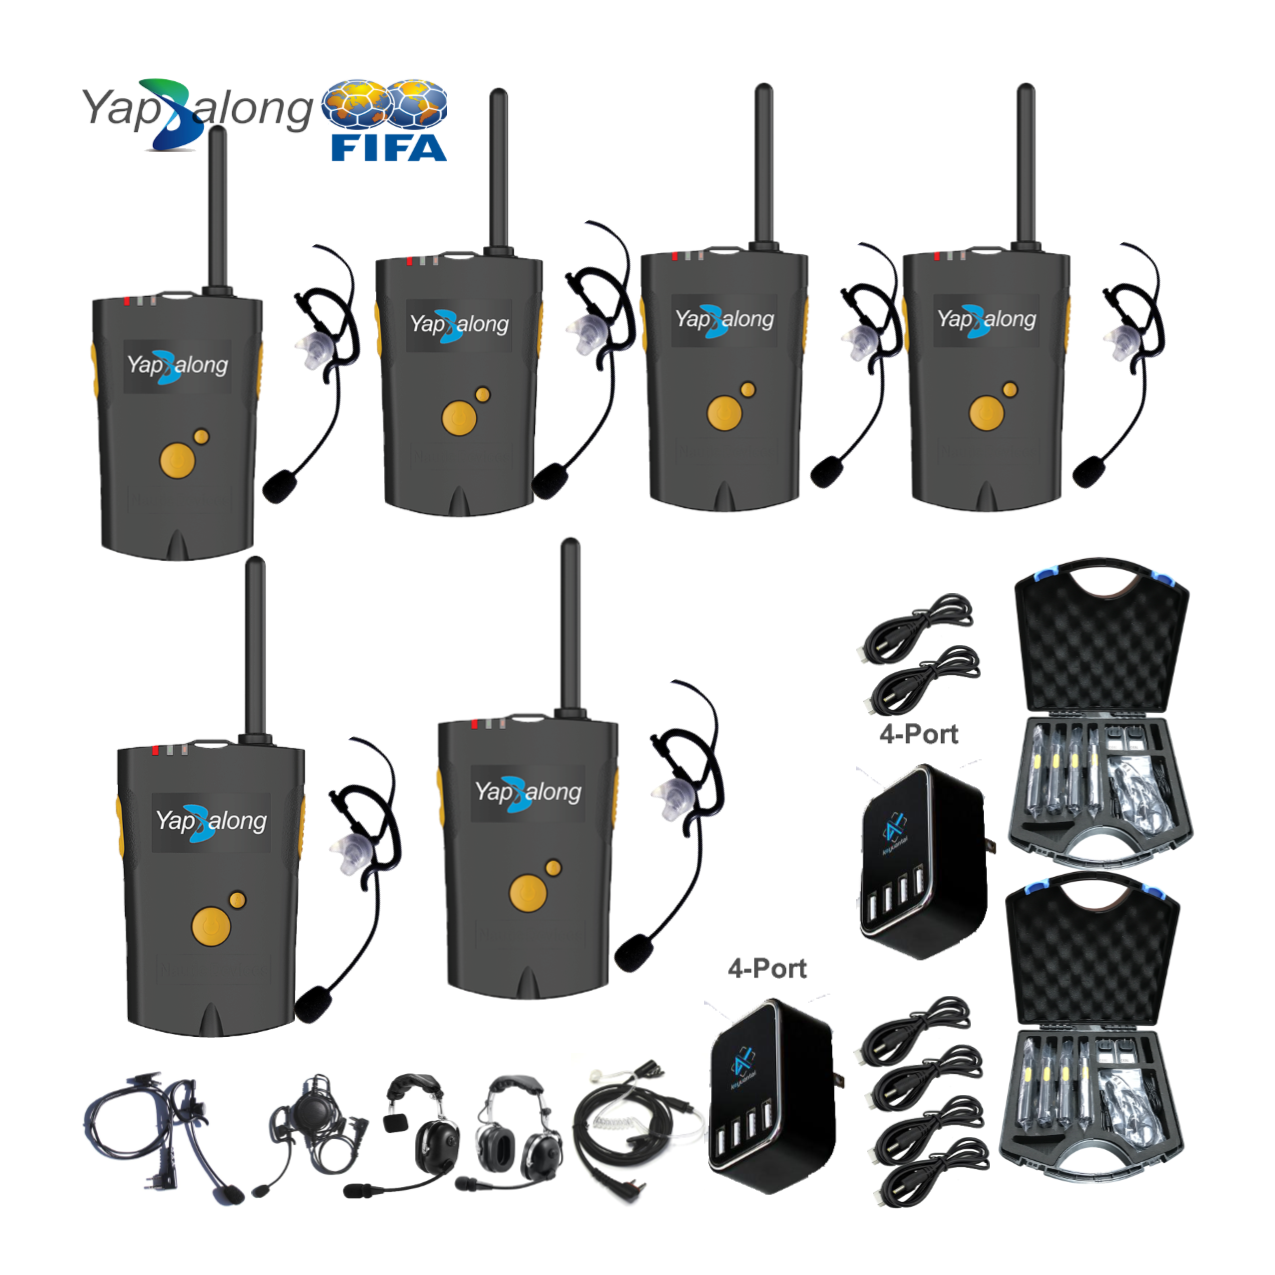 Yapalong 4000 (6-User) Complete Set Intercom Systems Intercom Systems